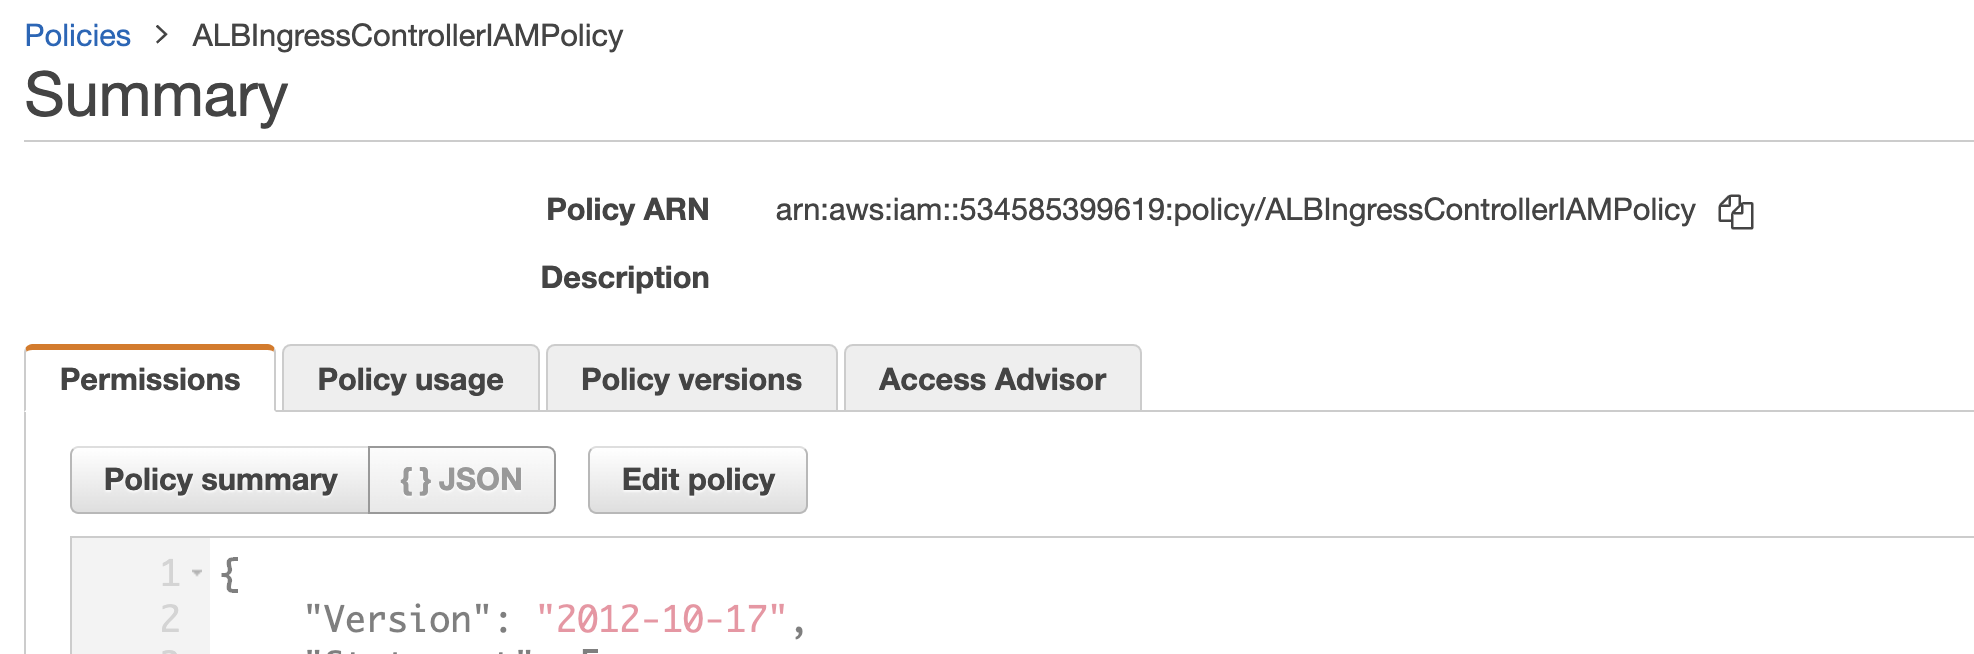 ARN of policy shown in console